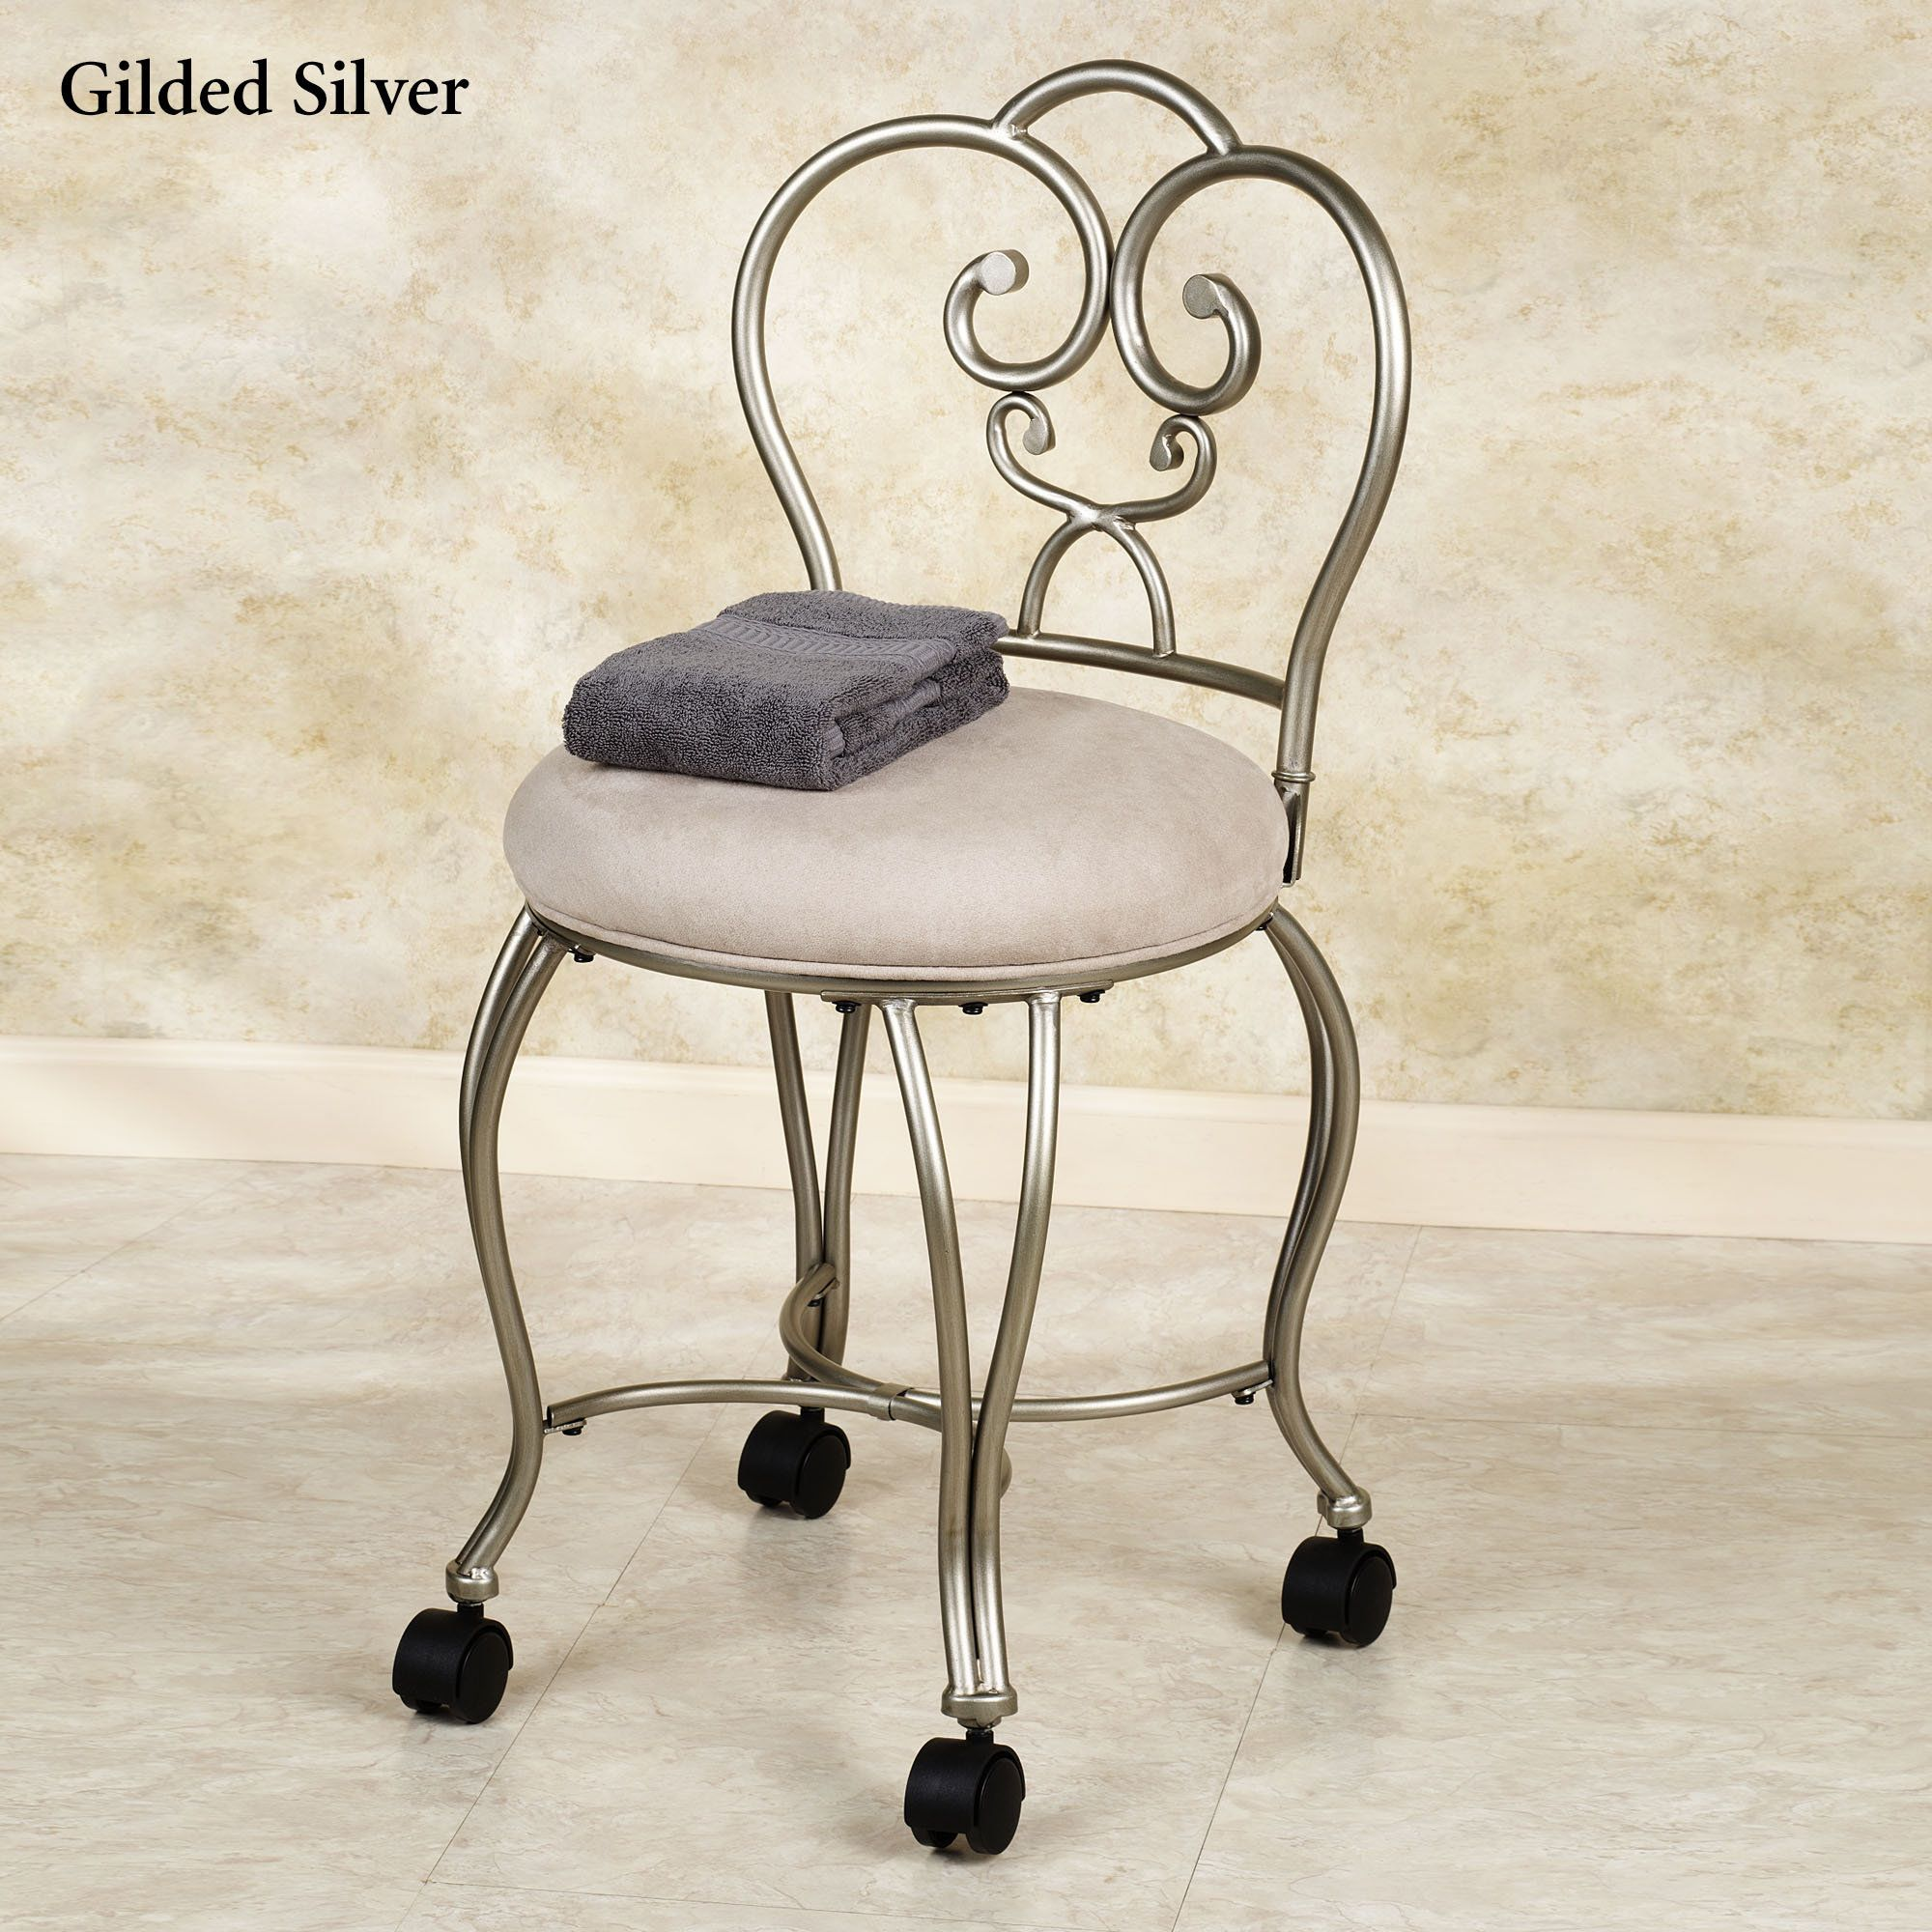 Lecia Vanity Chair Bathroom Vanity Chair Vanity Chair Vanity Stool